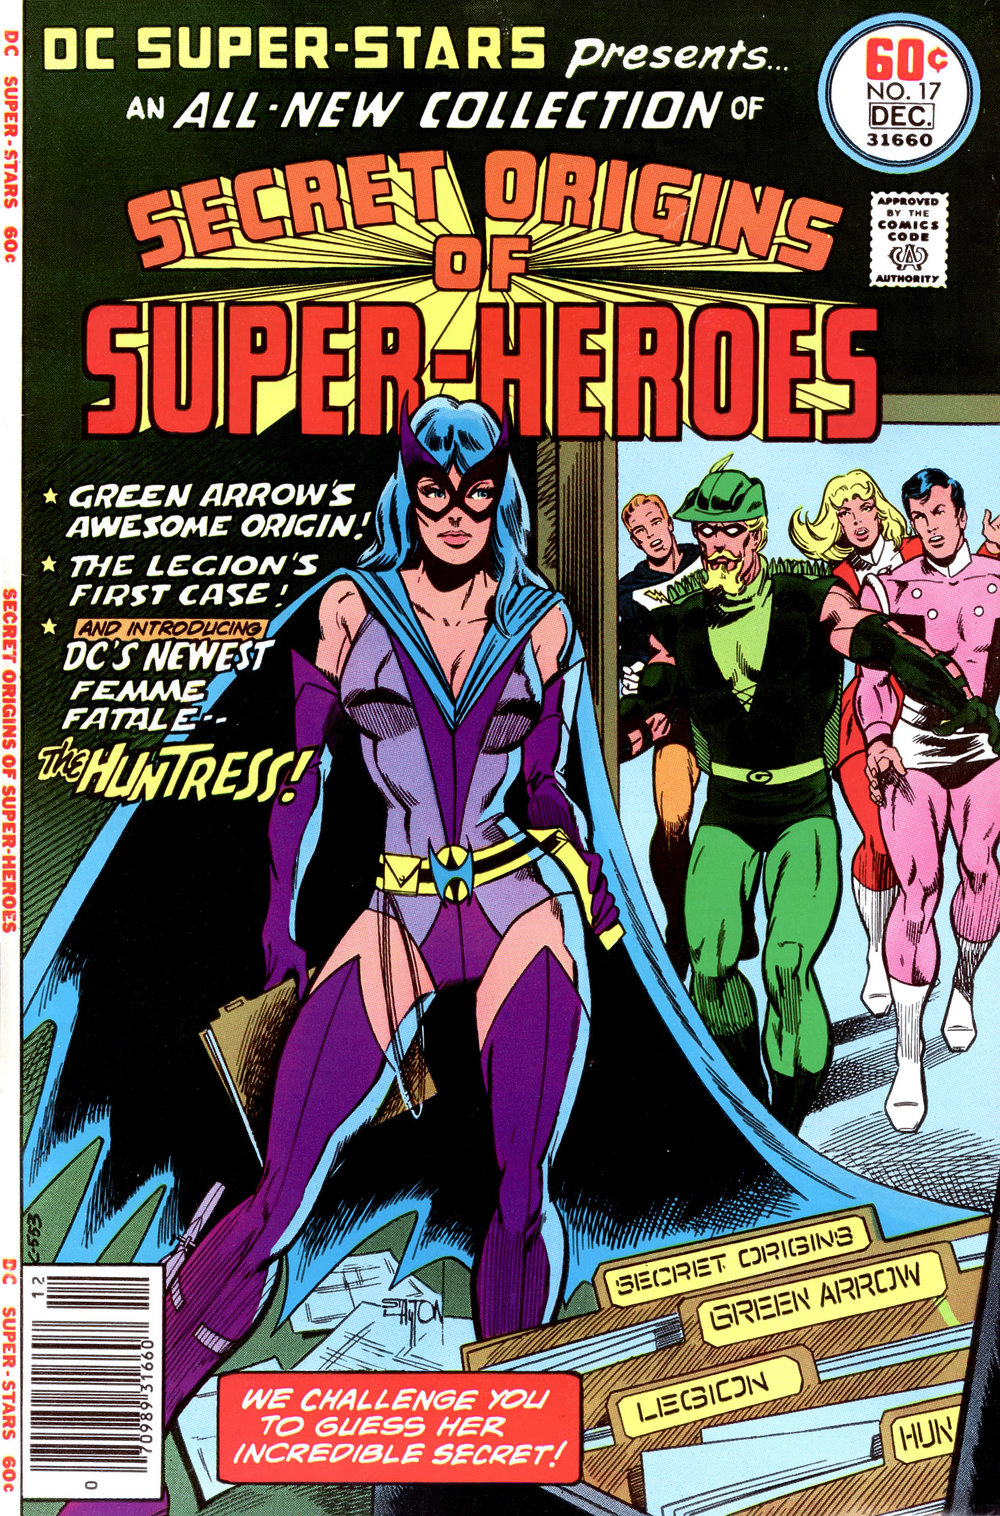 DC Super Stars (1976) #17, cover penciled by Joe Staton & inked by Bob Layton.